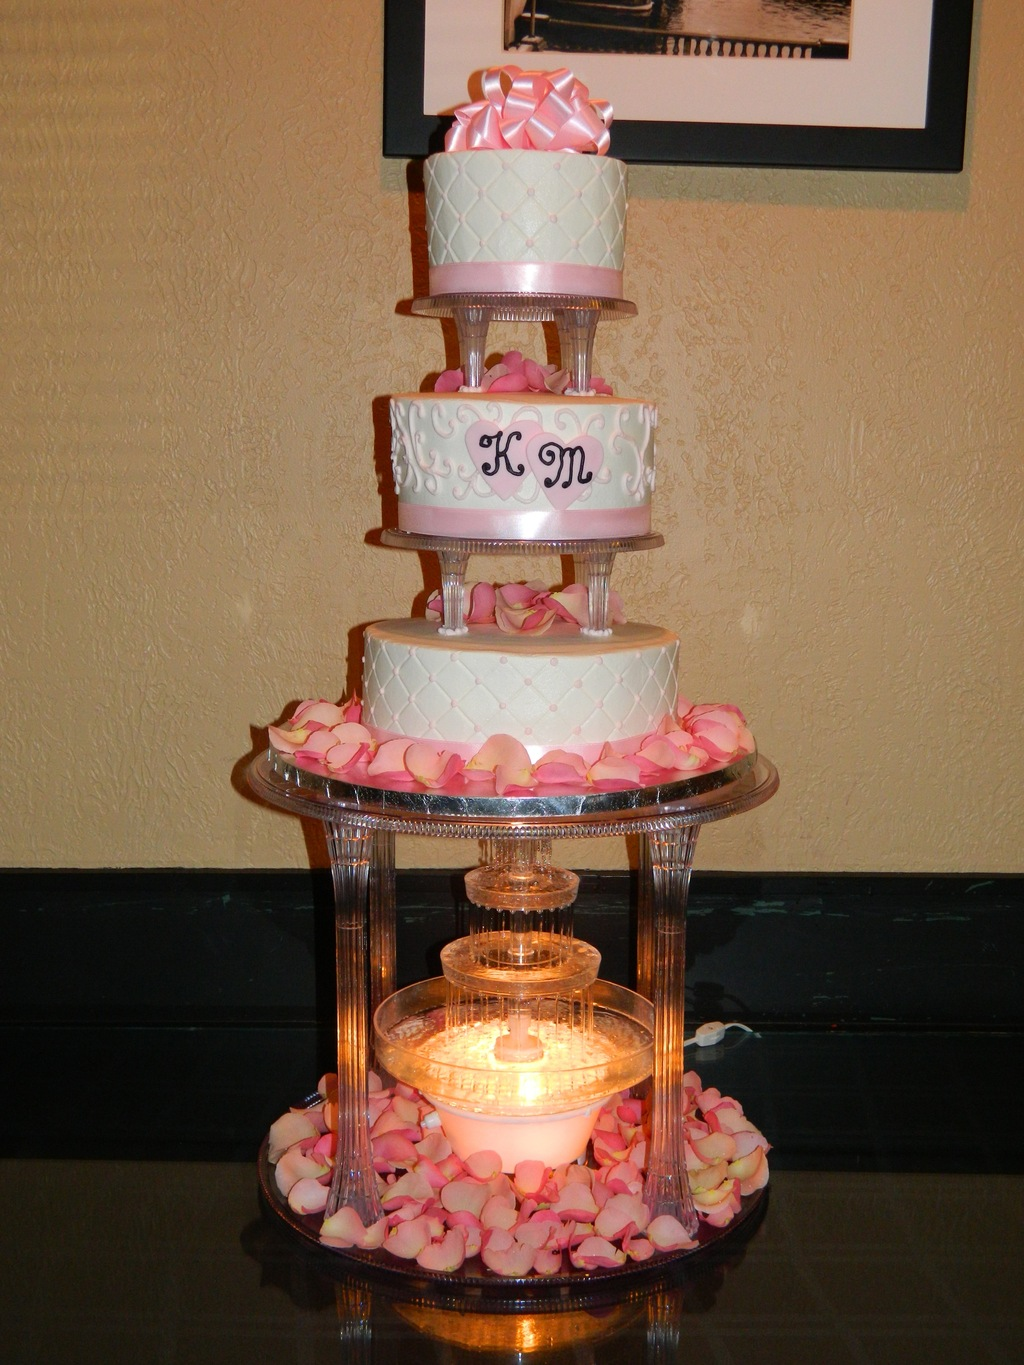 Cake%20pictures%20march%202012%20021.full